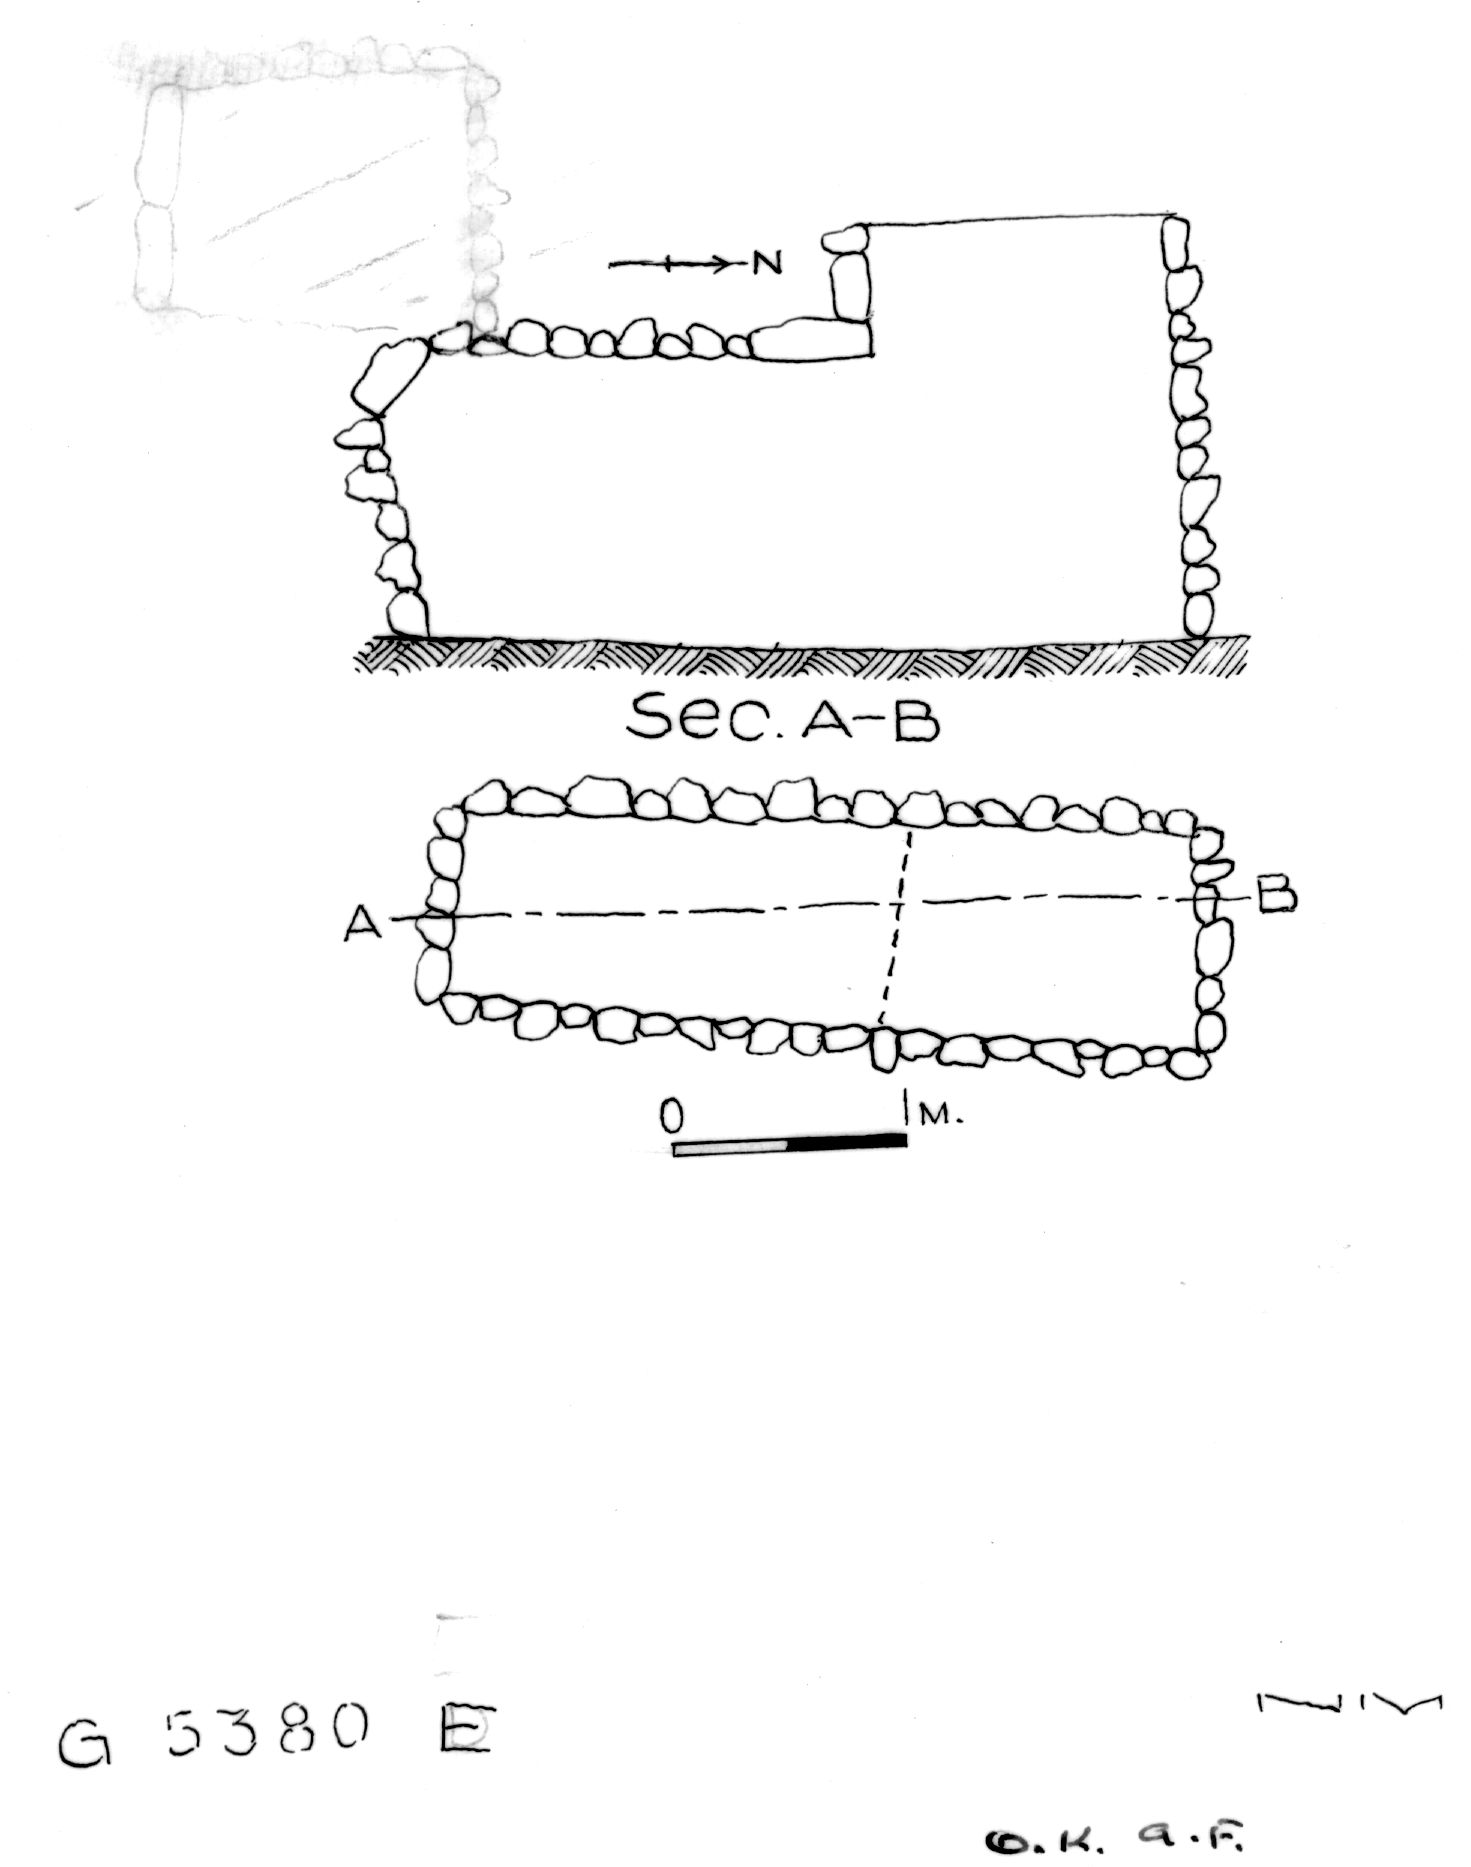 Maps and plans: G 2330 = G 5380, Shaft E